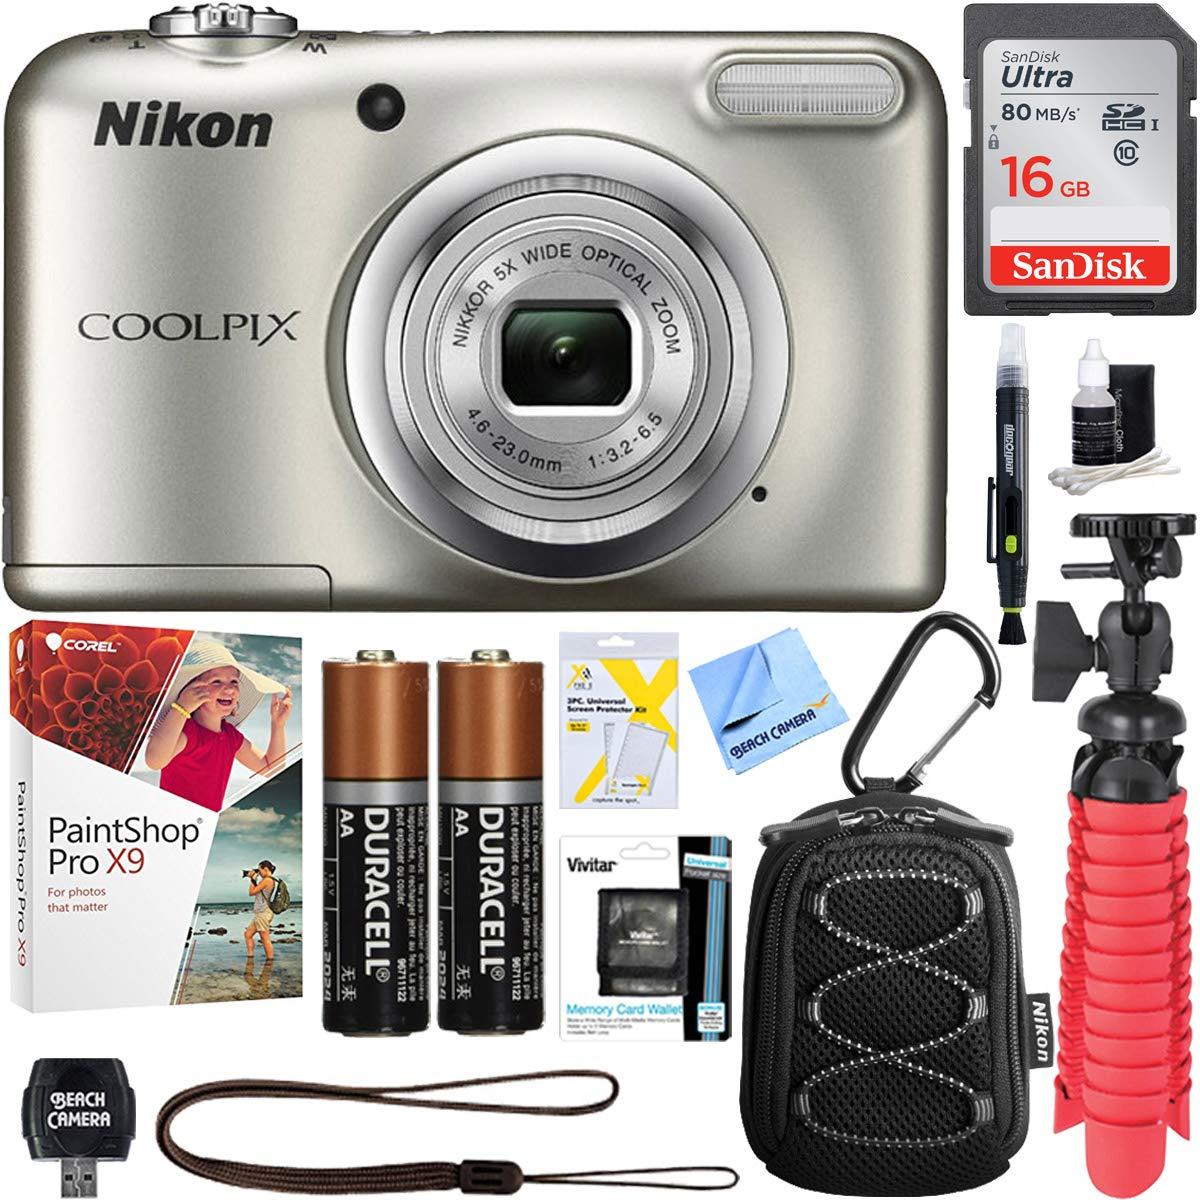 Comes with. A free High Speed USB Adapter is included 16GB Class 10 SDHC Team High Speed Memory Card 20MB//Sec Fastest Card in the Market FOR NIKON COOLPIX L22 1000p 1000pj